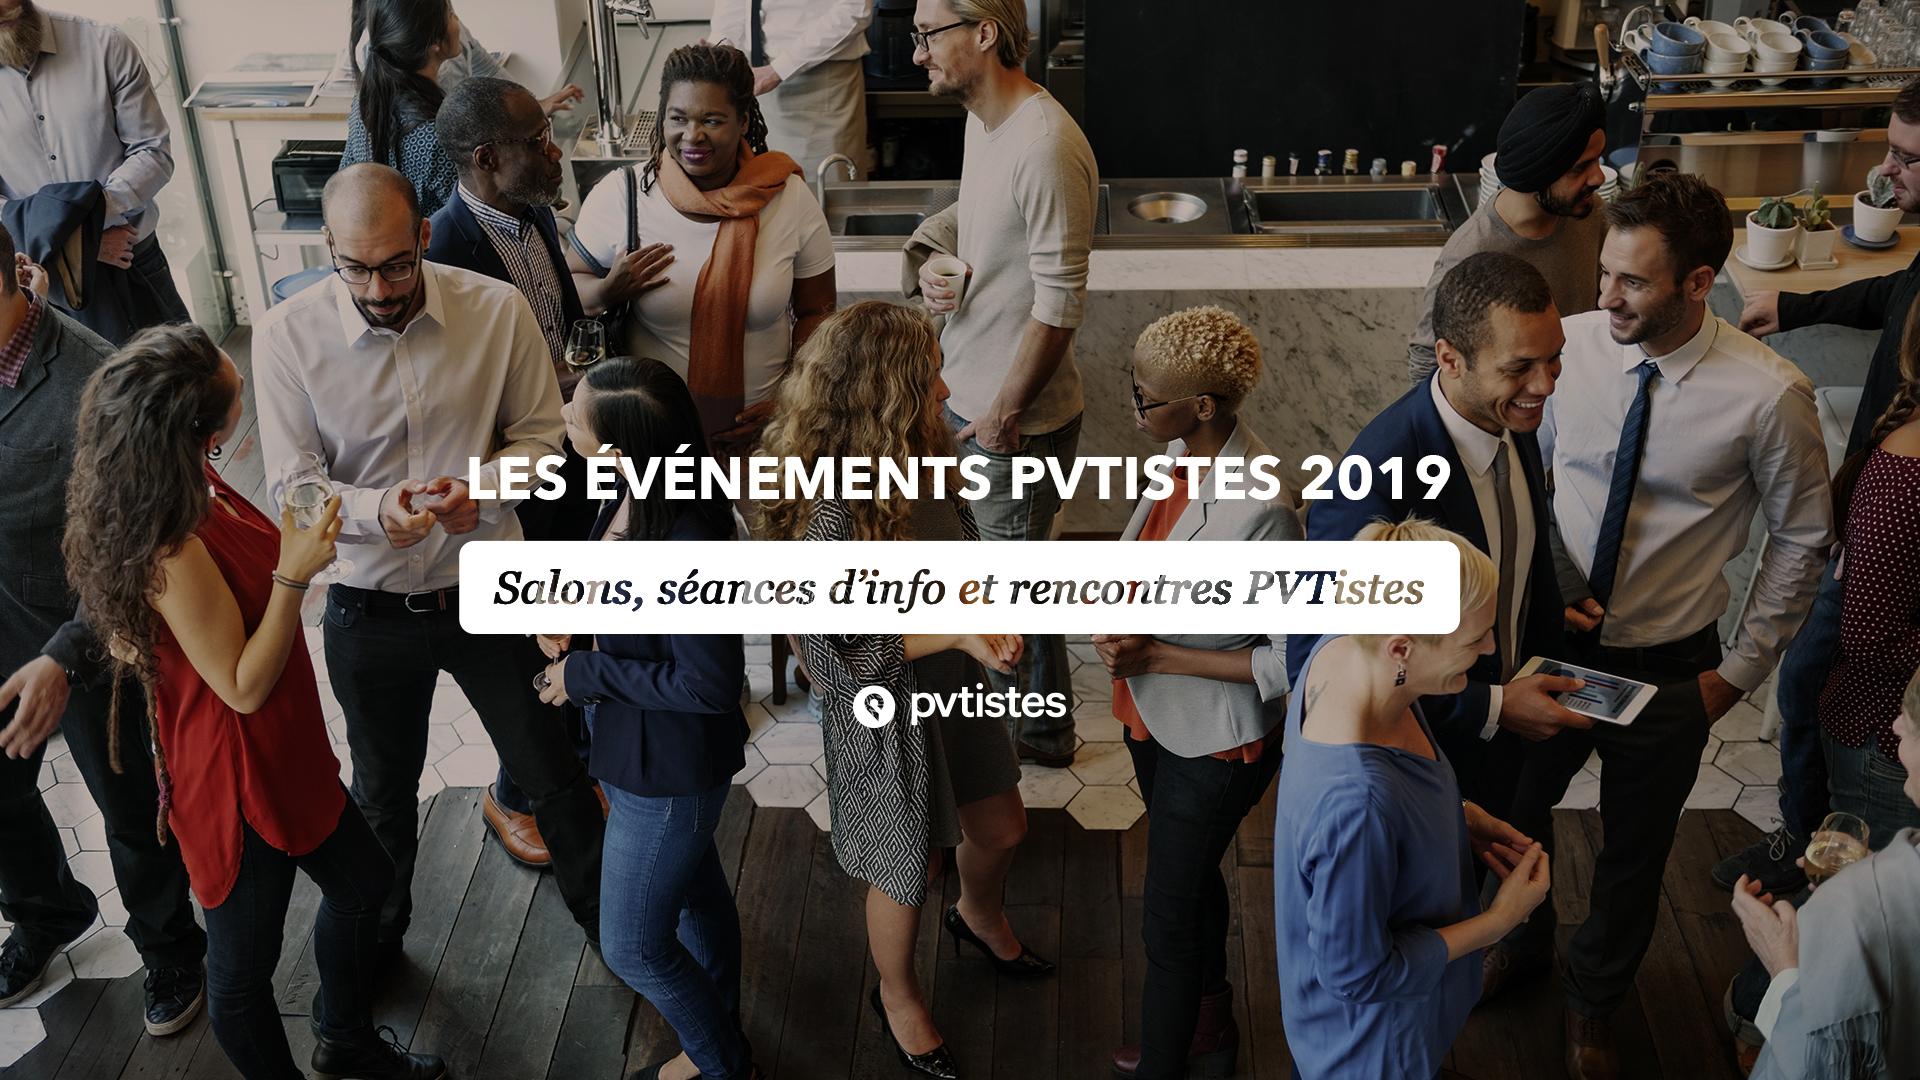 rs-pvtistes-evenements-2019